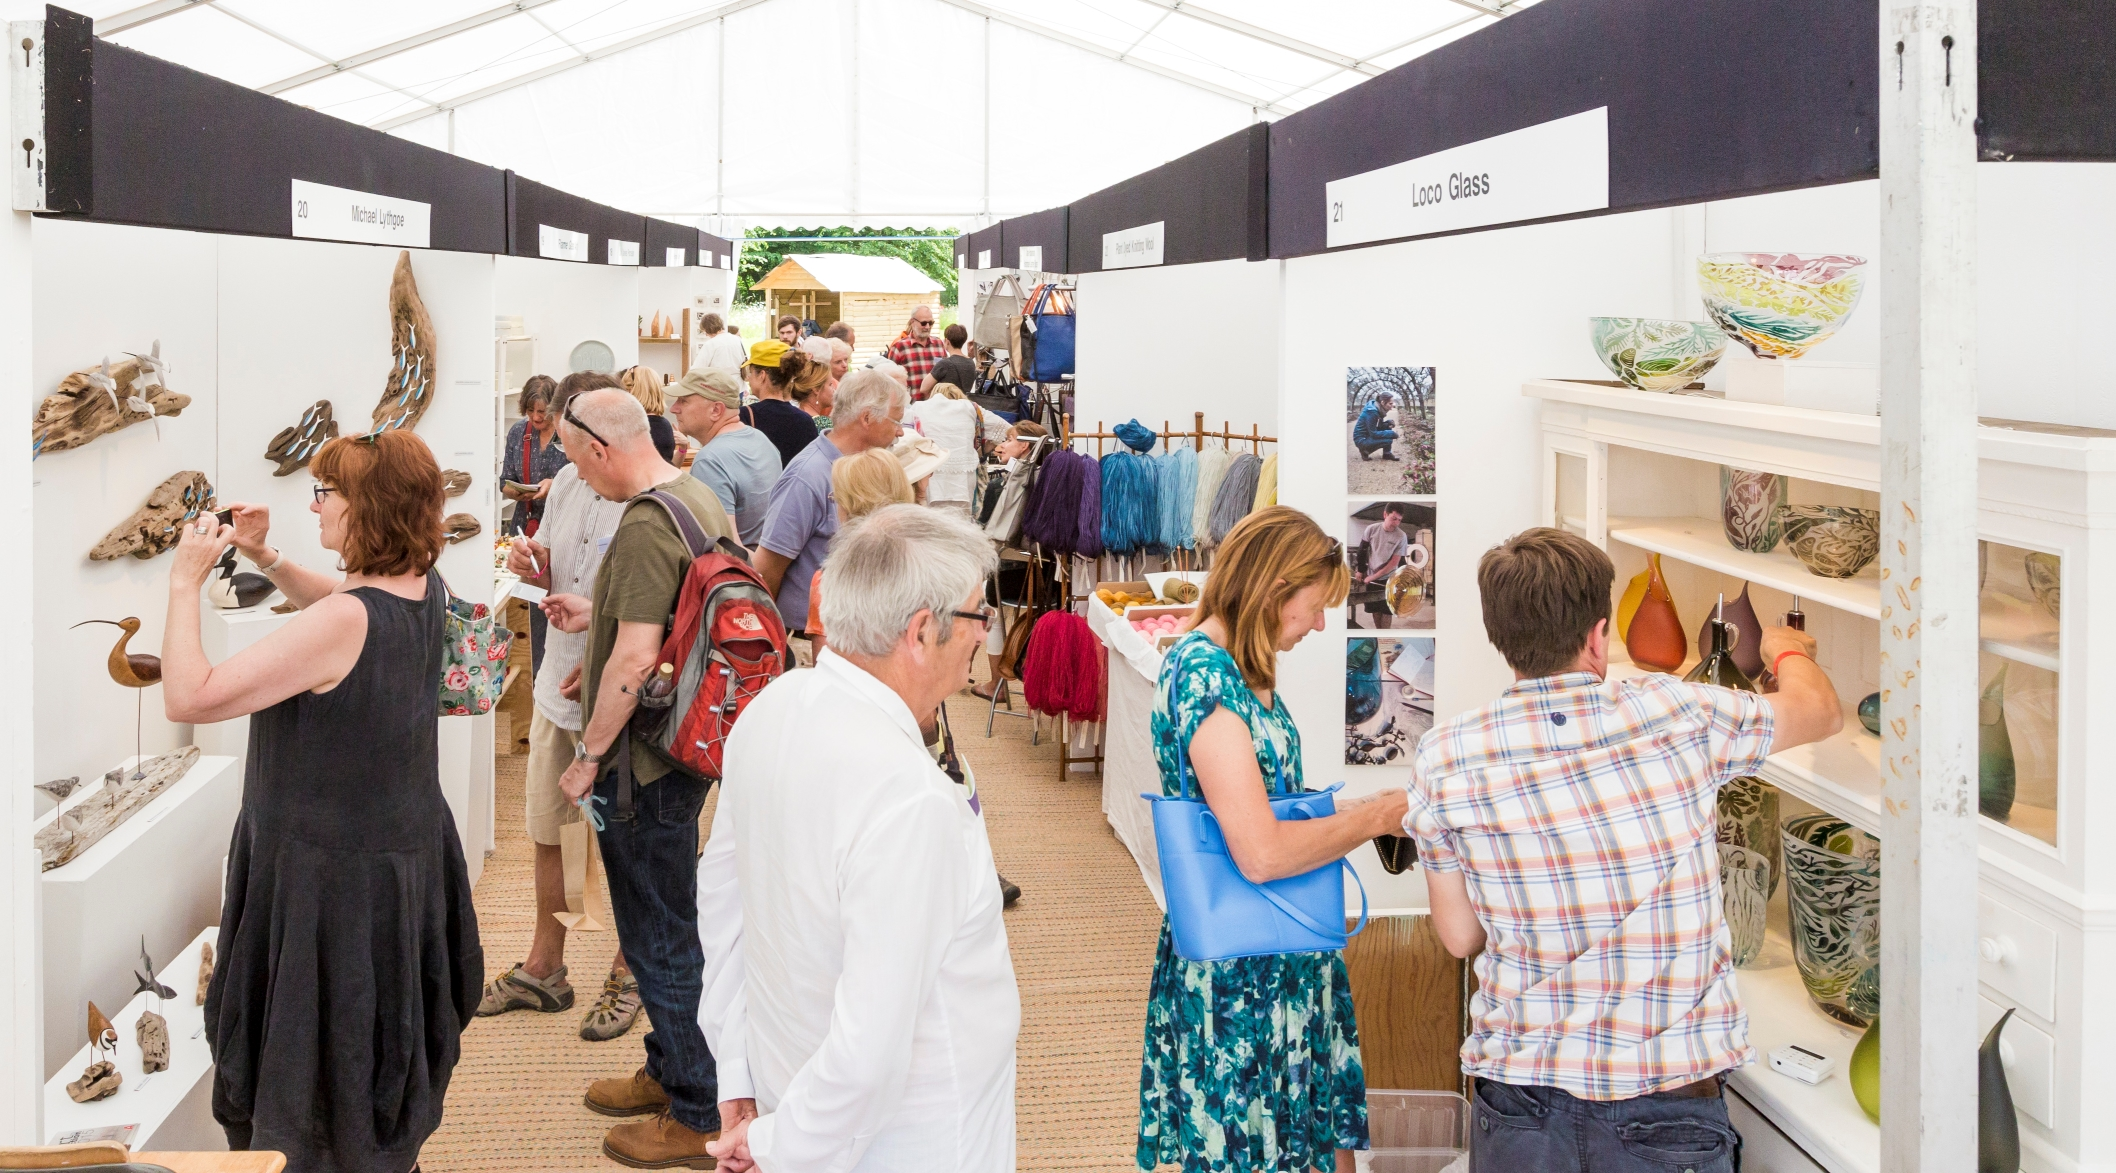 6 Degrees Salon Portsmouth Of West Dean Design And Craft Fair Featuring Made 2016